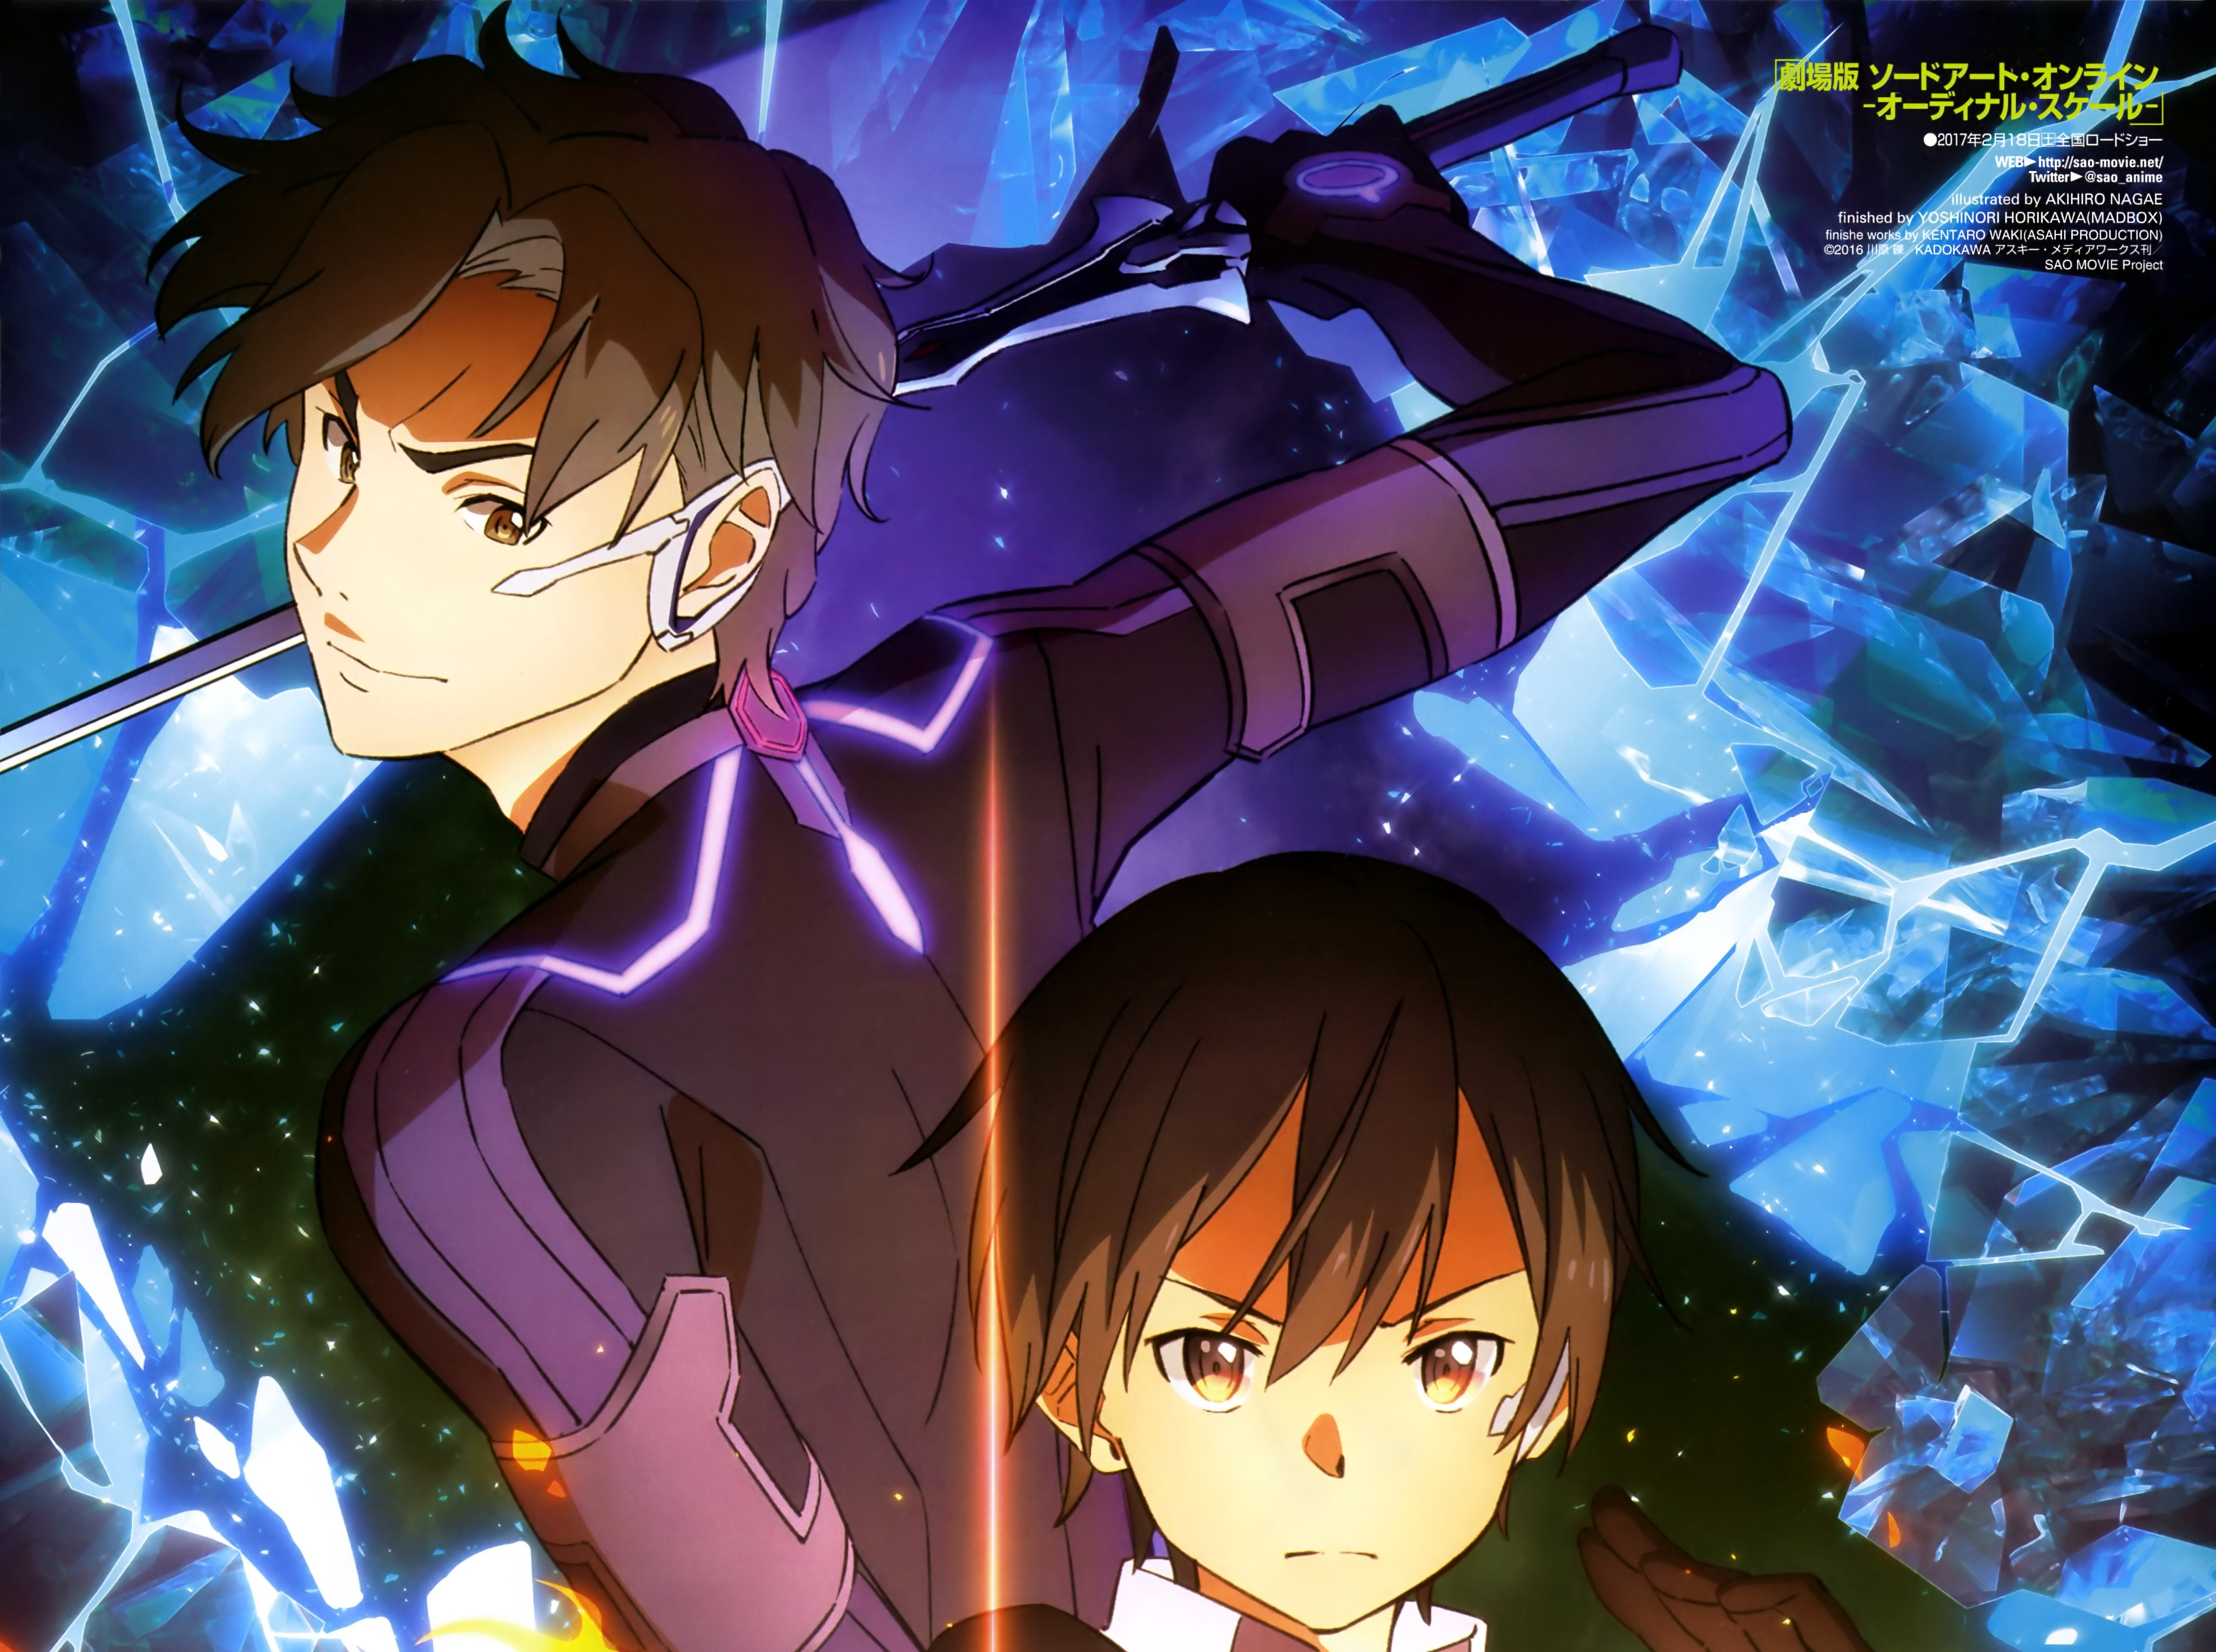 Sao 4k Wallpaper Posted By Michelle Johnson